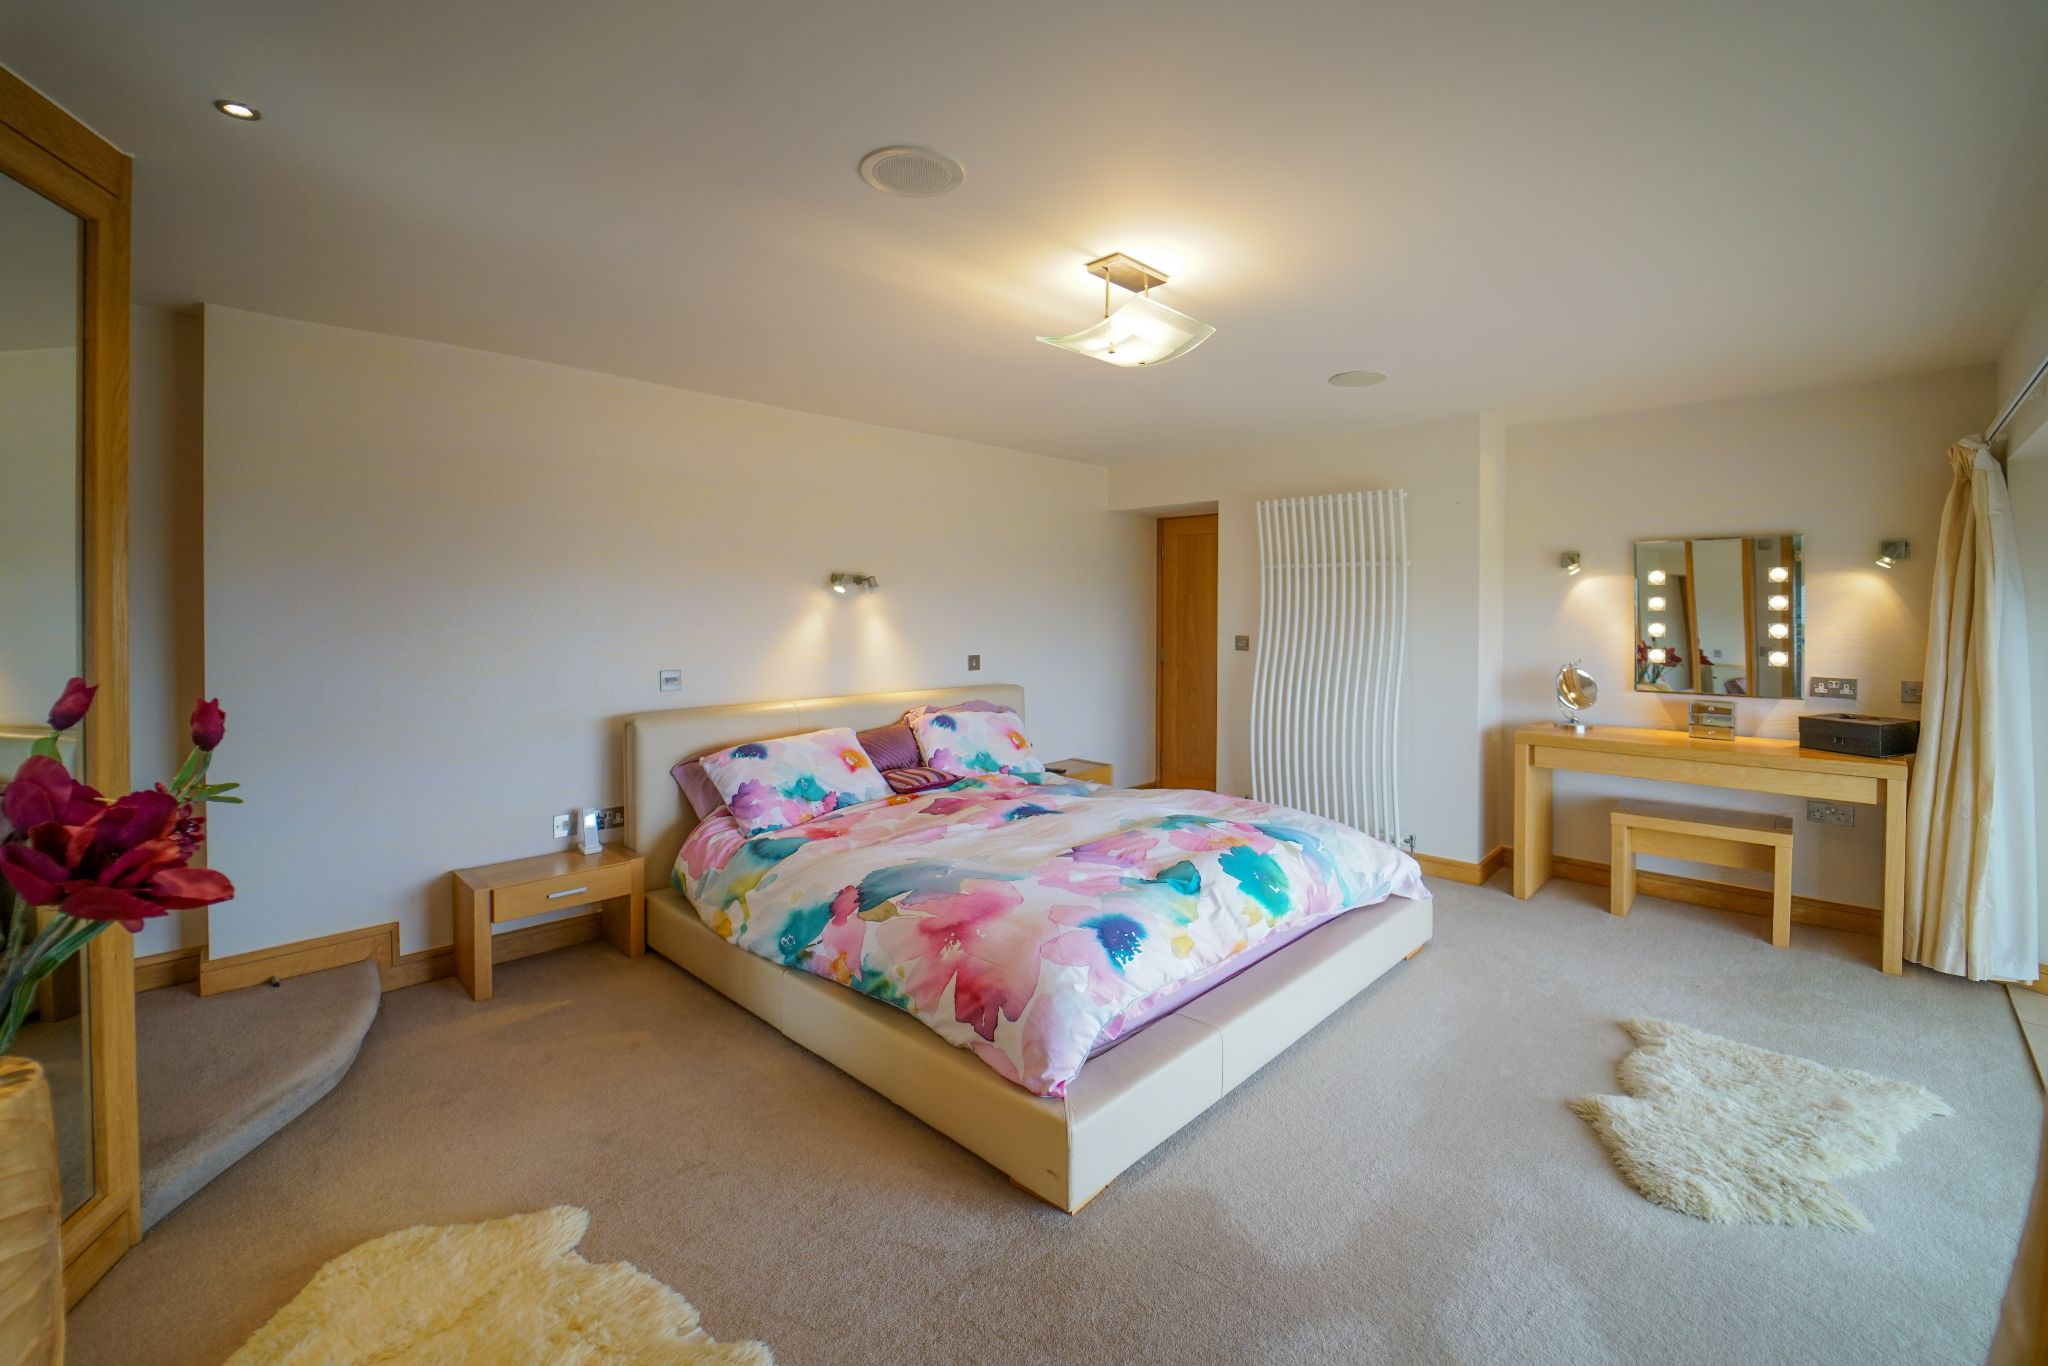 5 bedroom barn conversion house For Sale in Bolton - Photograph 40